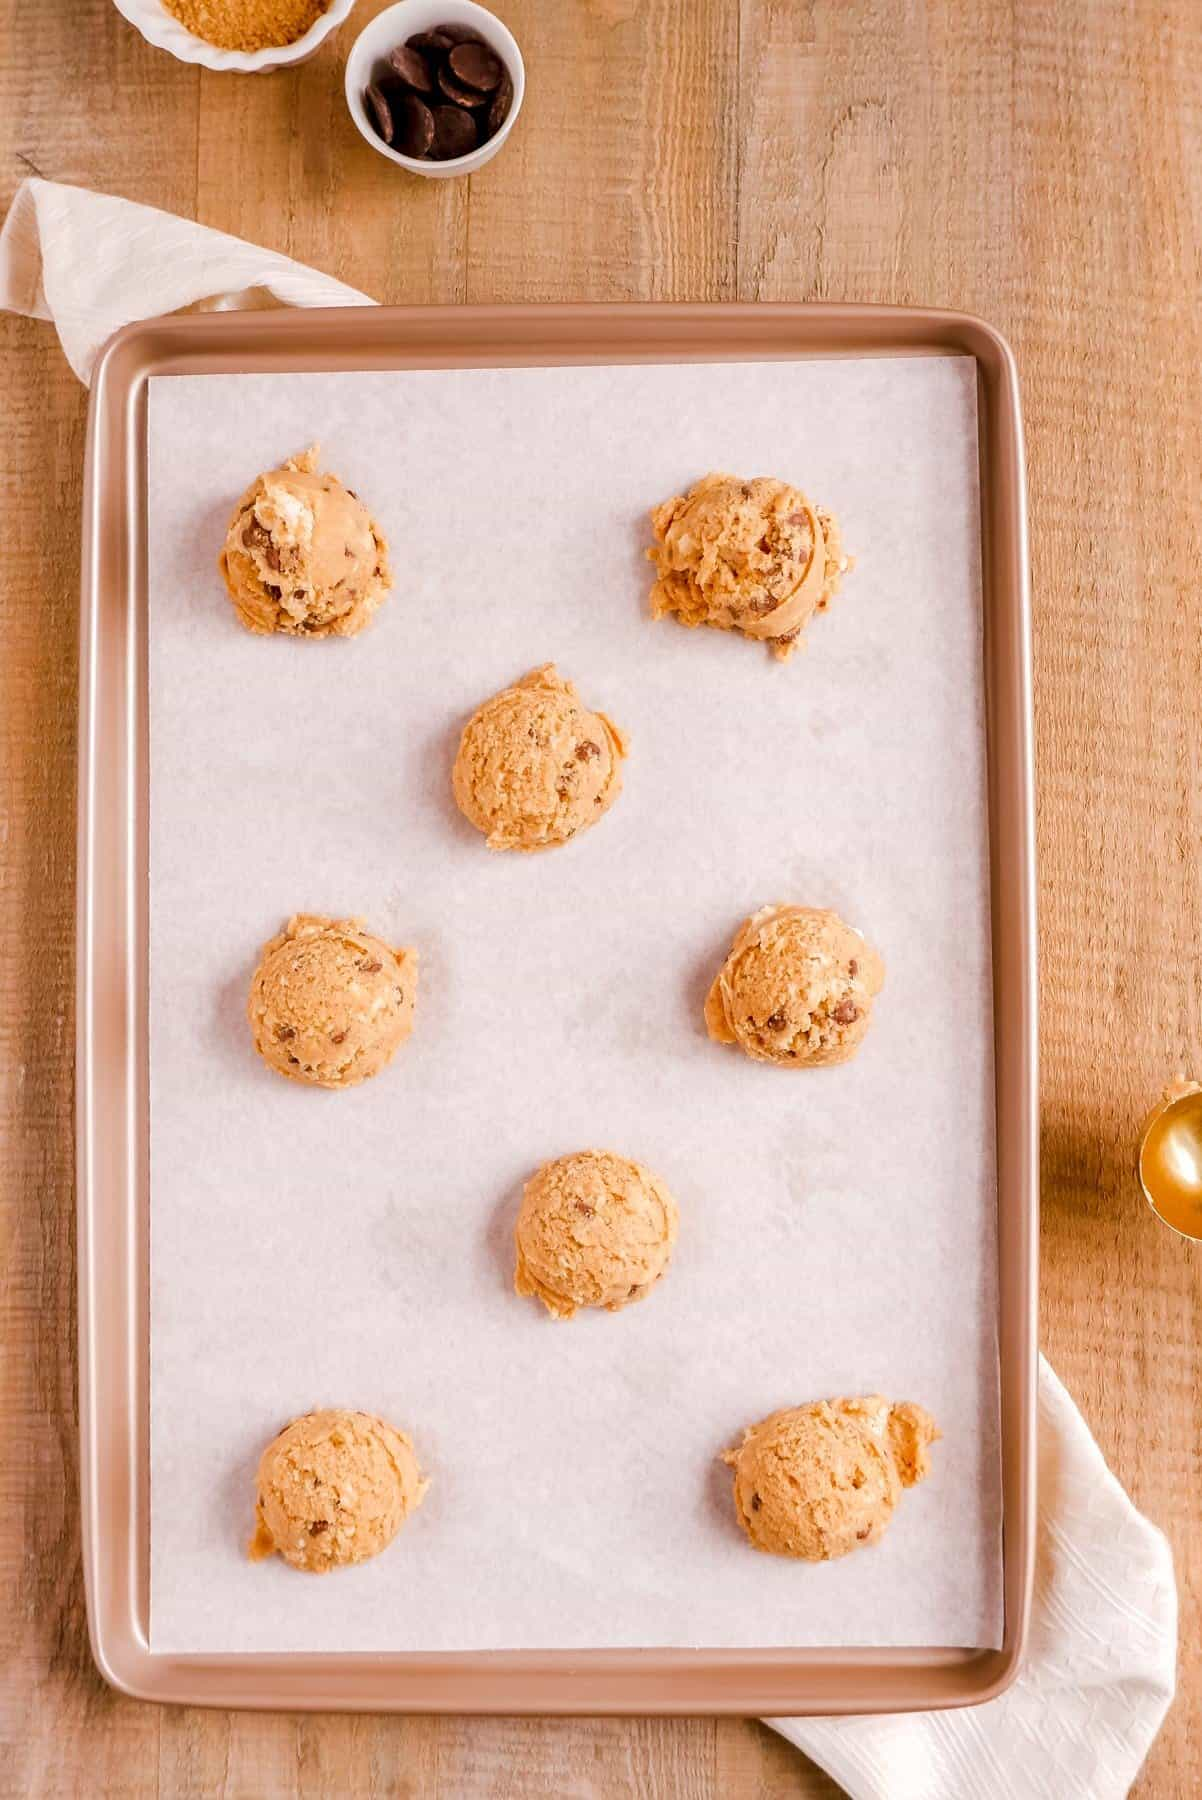 scooped smores cookie dough balls on a parchment-lined gold baking sheet.